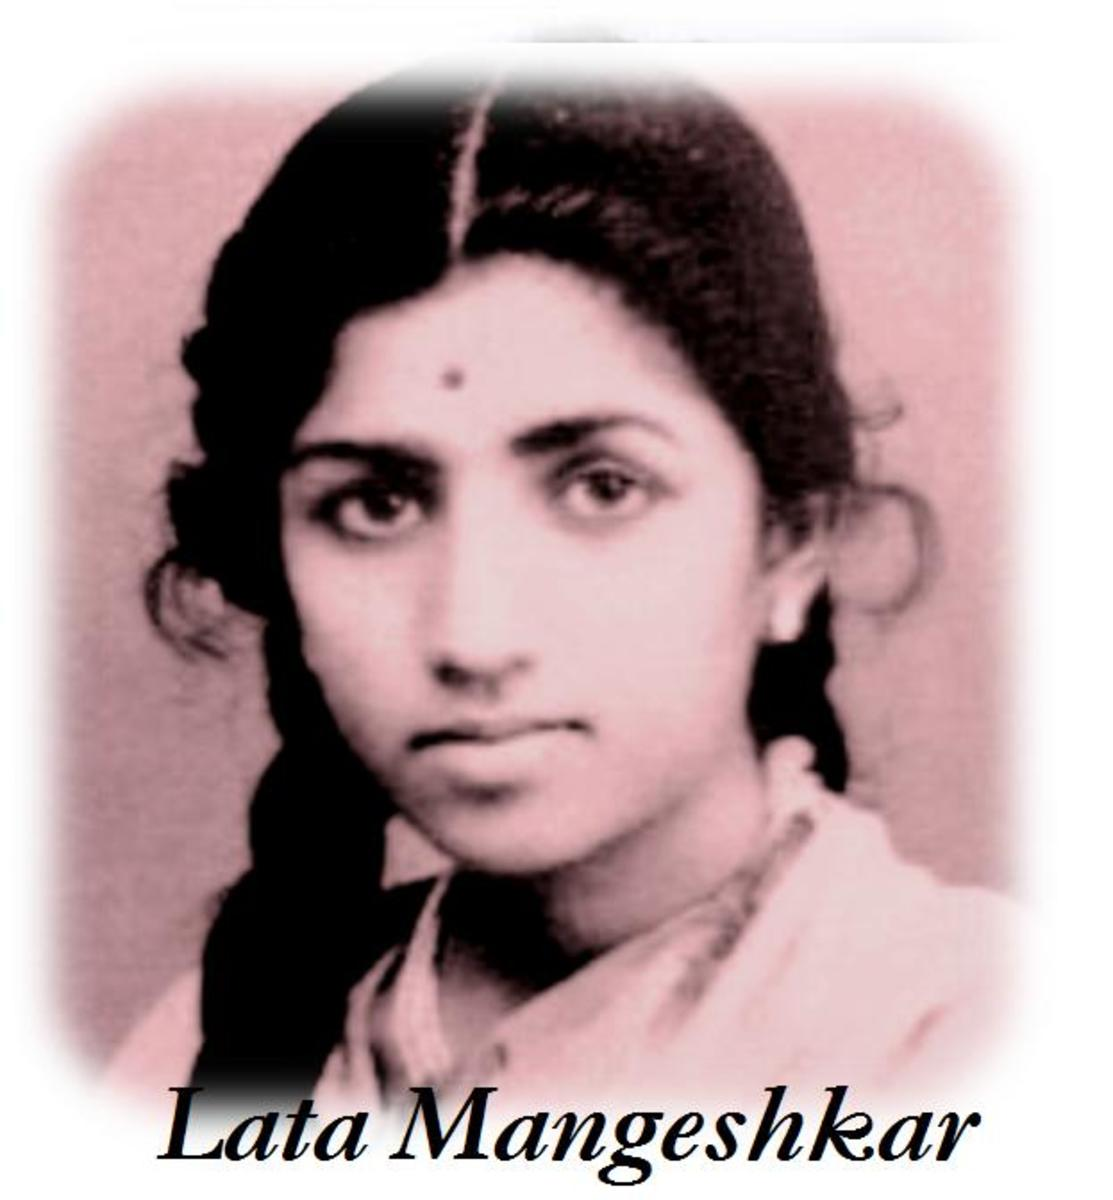 Lata mangeshkar - The girl who literally changed the sound of music in Bollywood